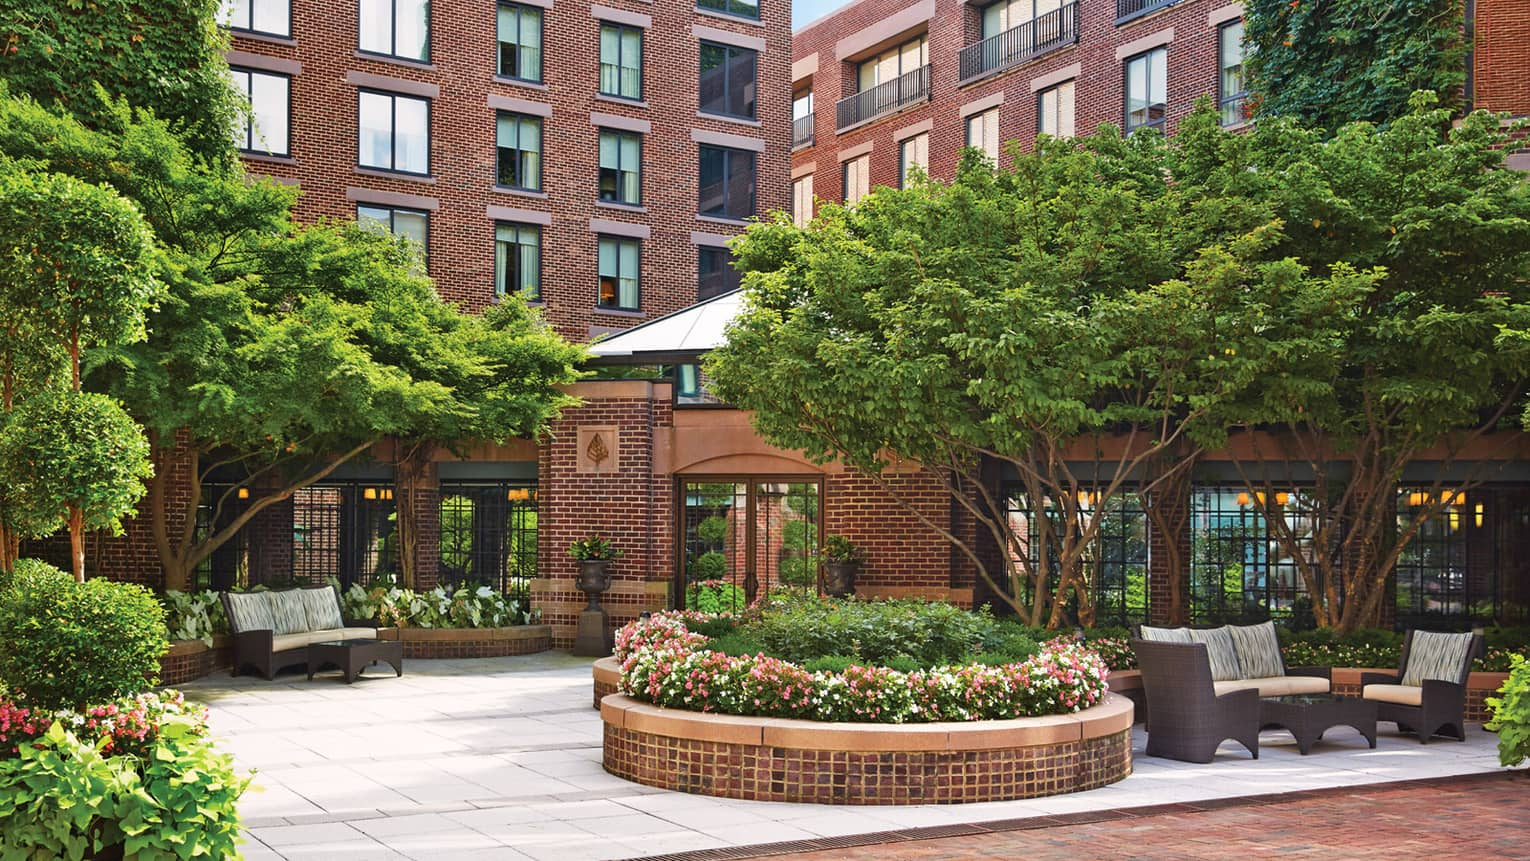 Four Seasons Hotel Washington DC brick exterior, garden courtyard